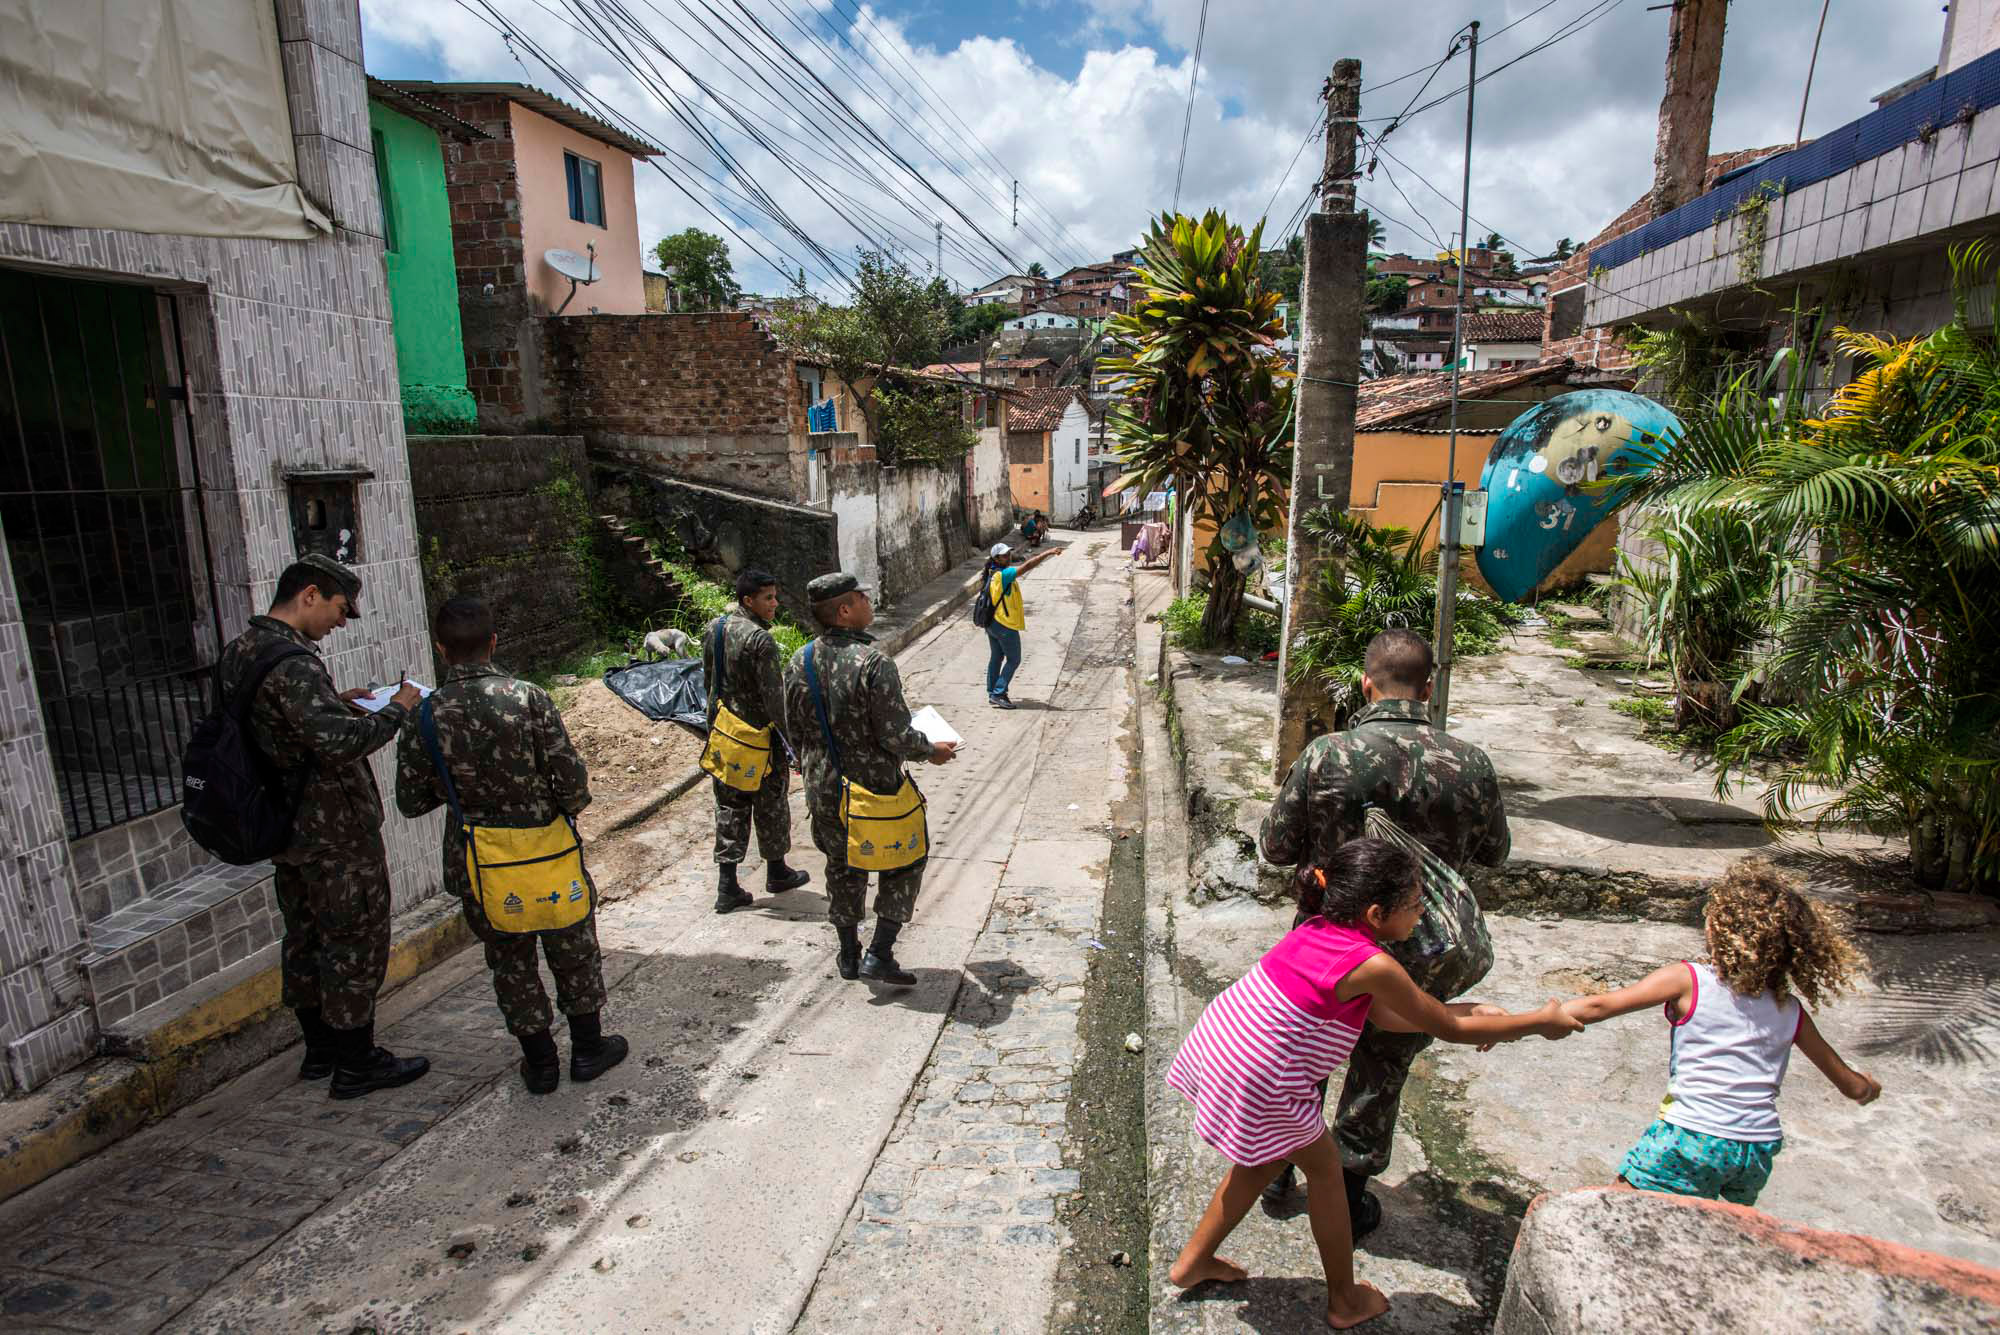 Members of the military walk the streets of the Nova Descoberta neighborhood in a campaign to prevent the transmission of the Zika virus in Recife, Brazil, Feb. 2, 2016.